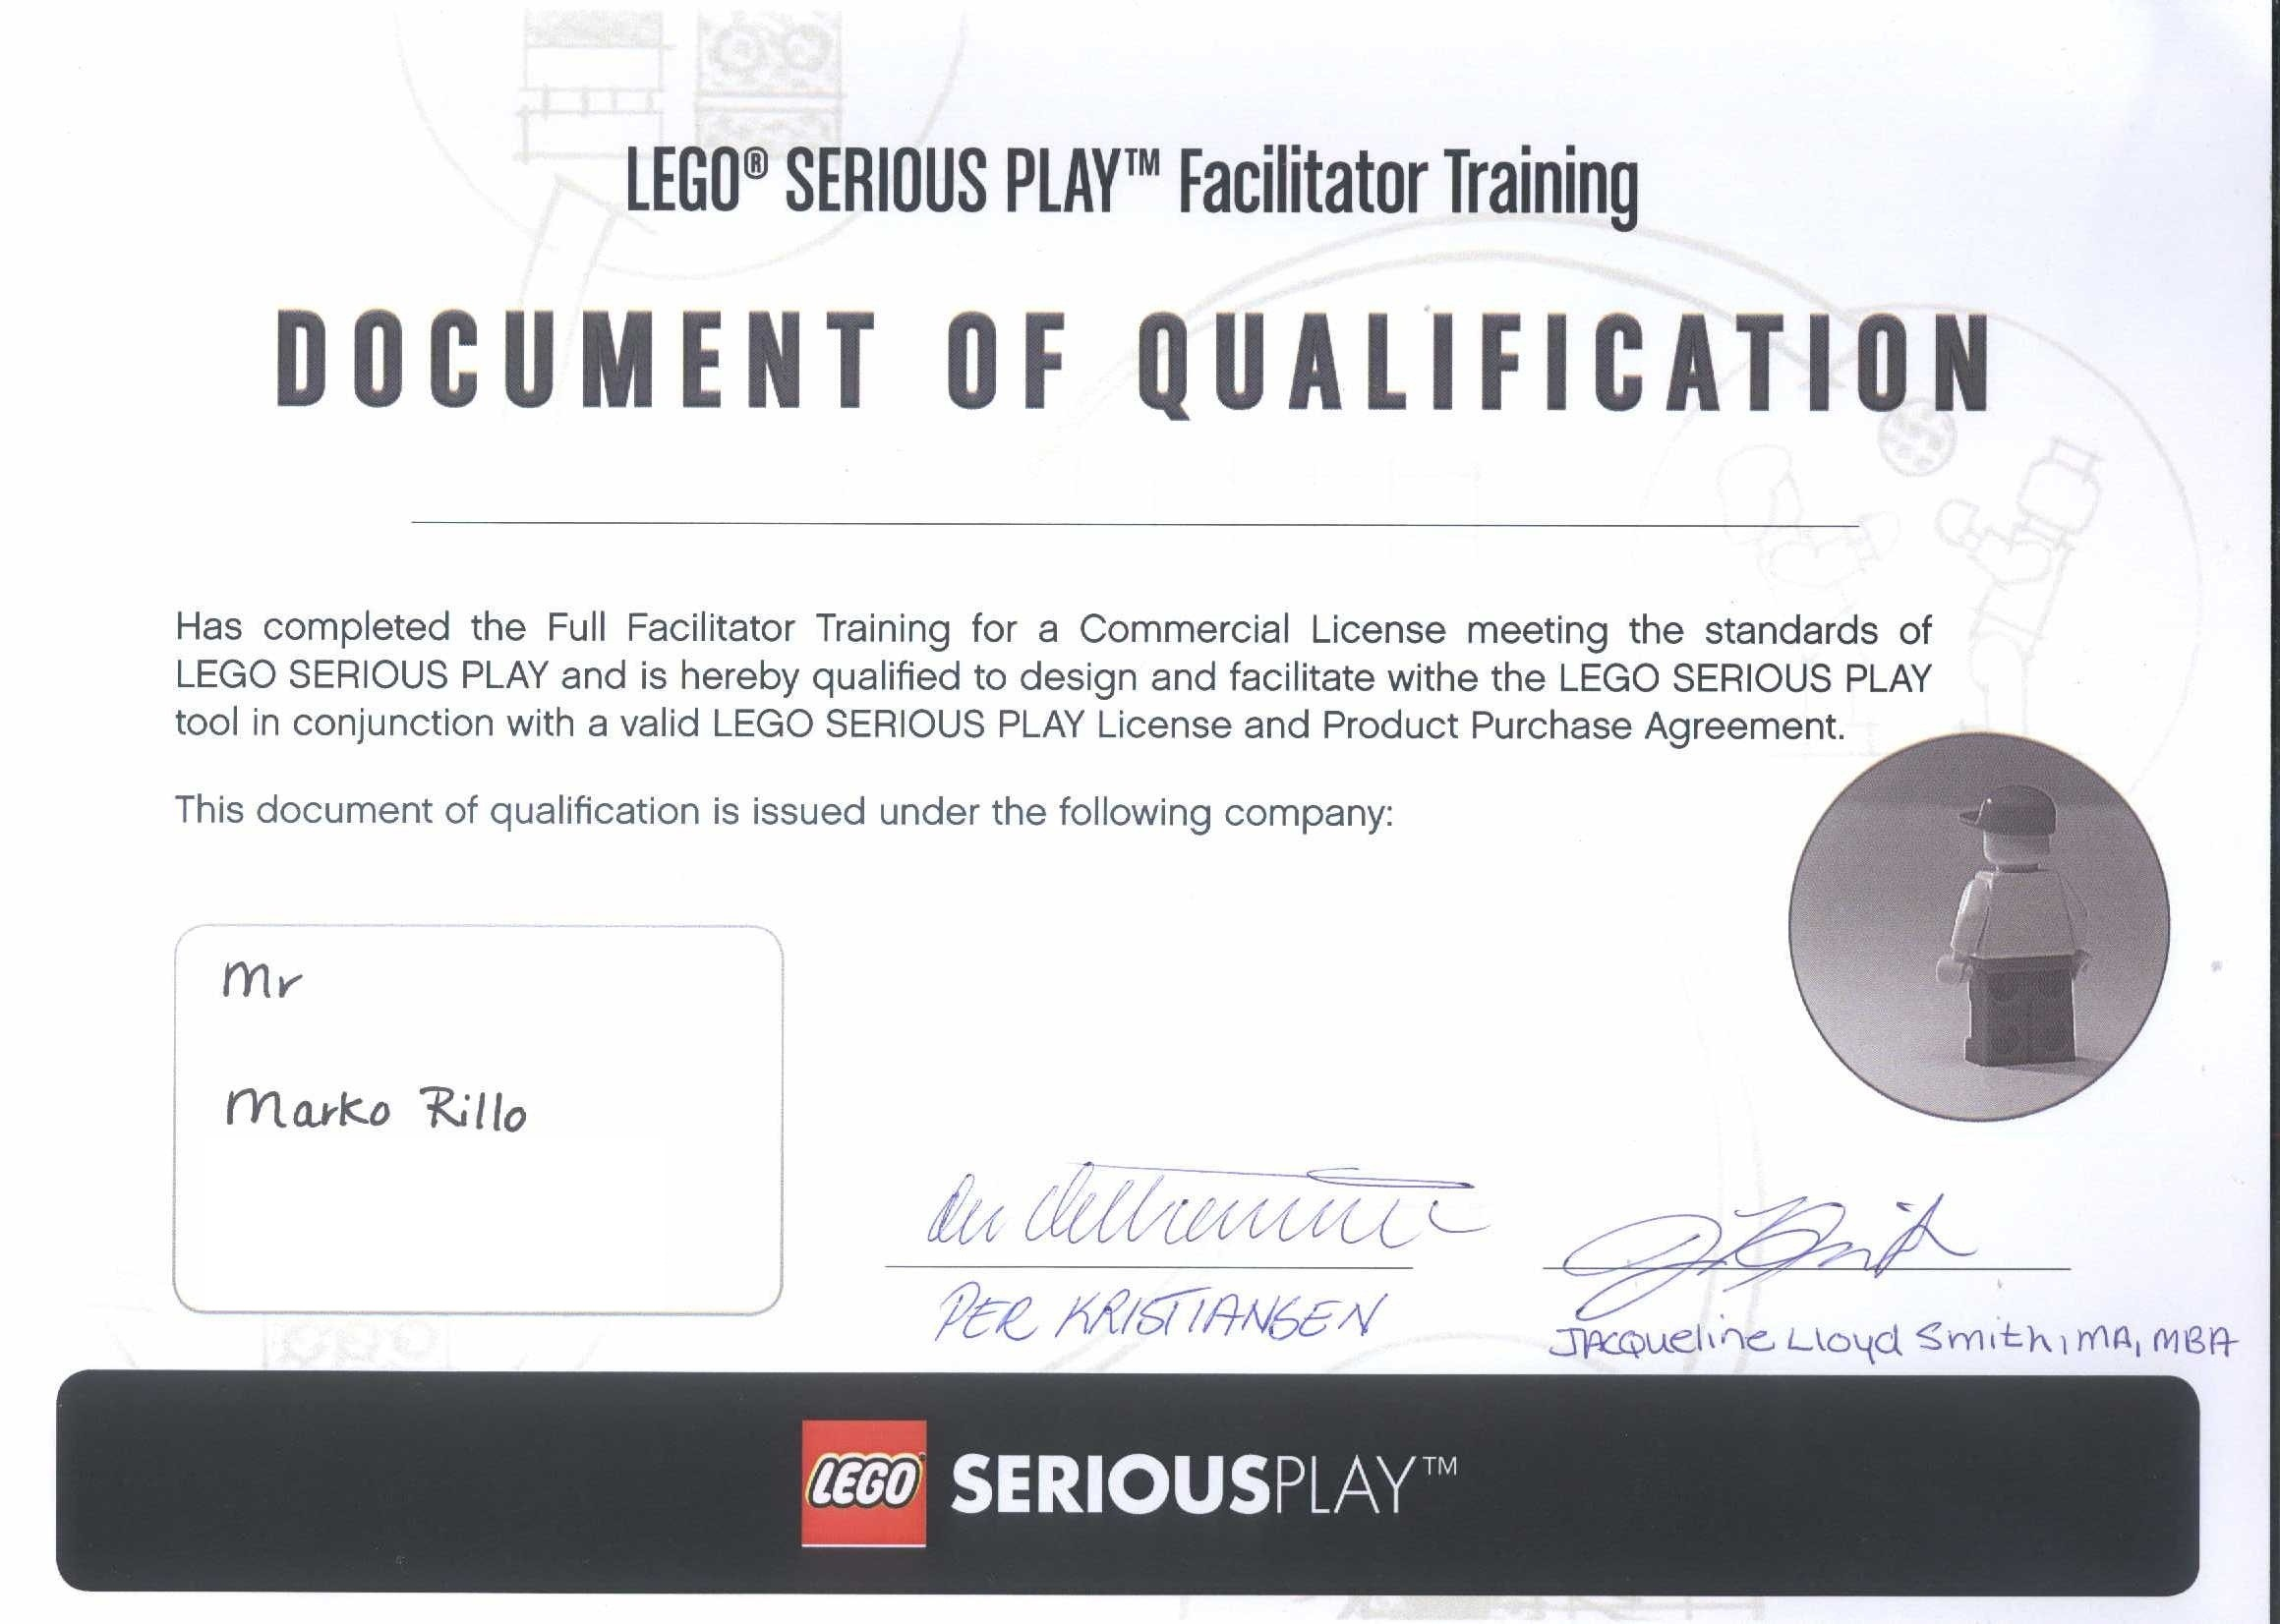 LEGO® SERIOUS PLAY® Facilitator – Marko Rillo